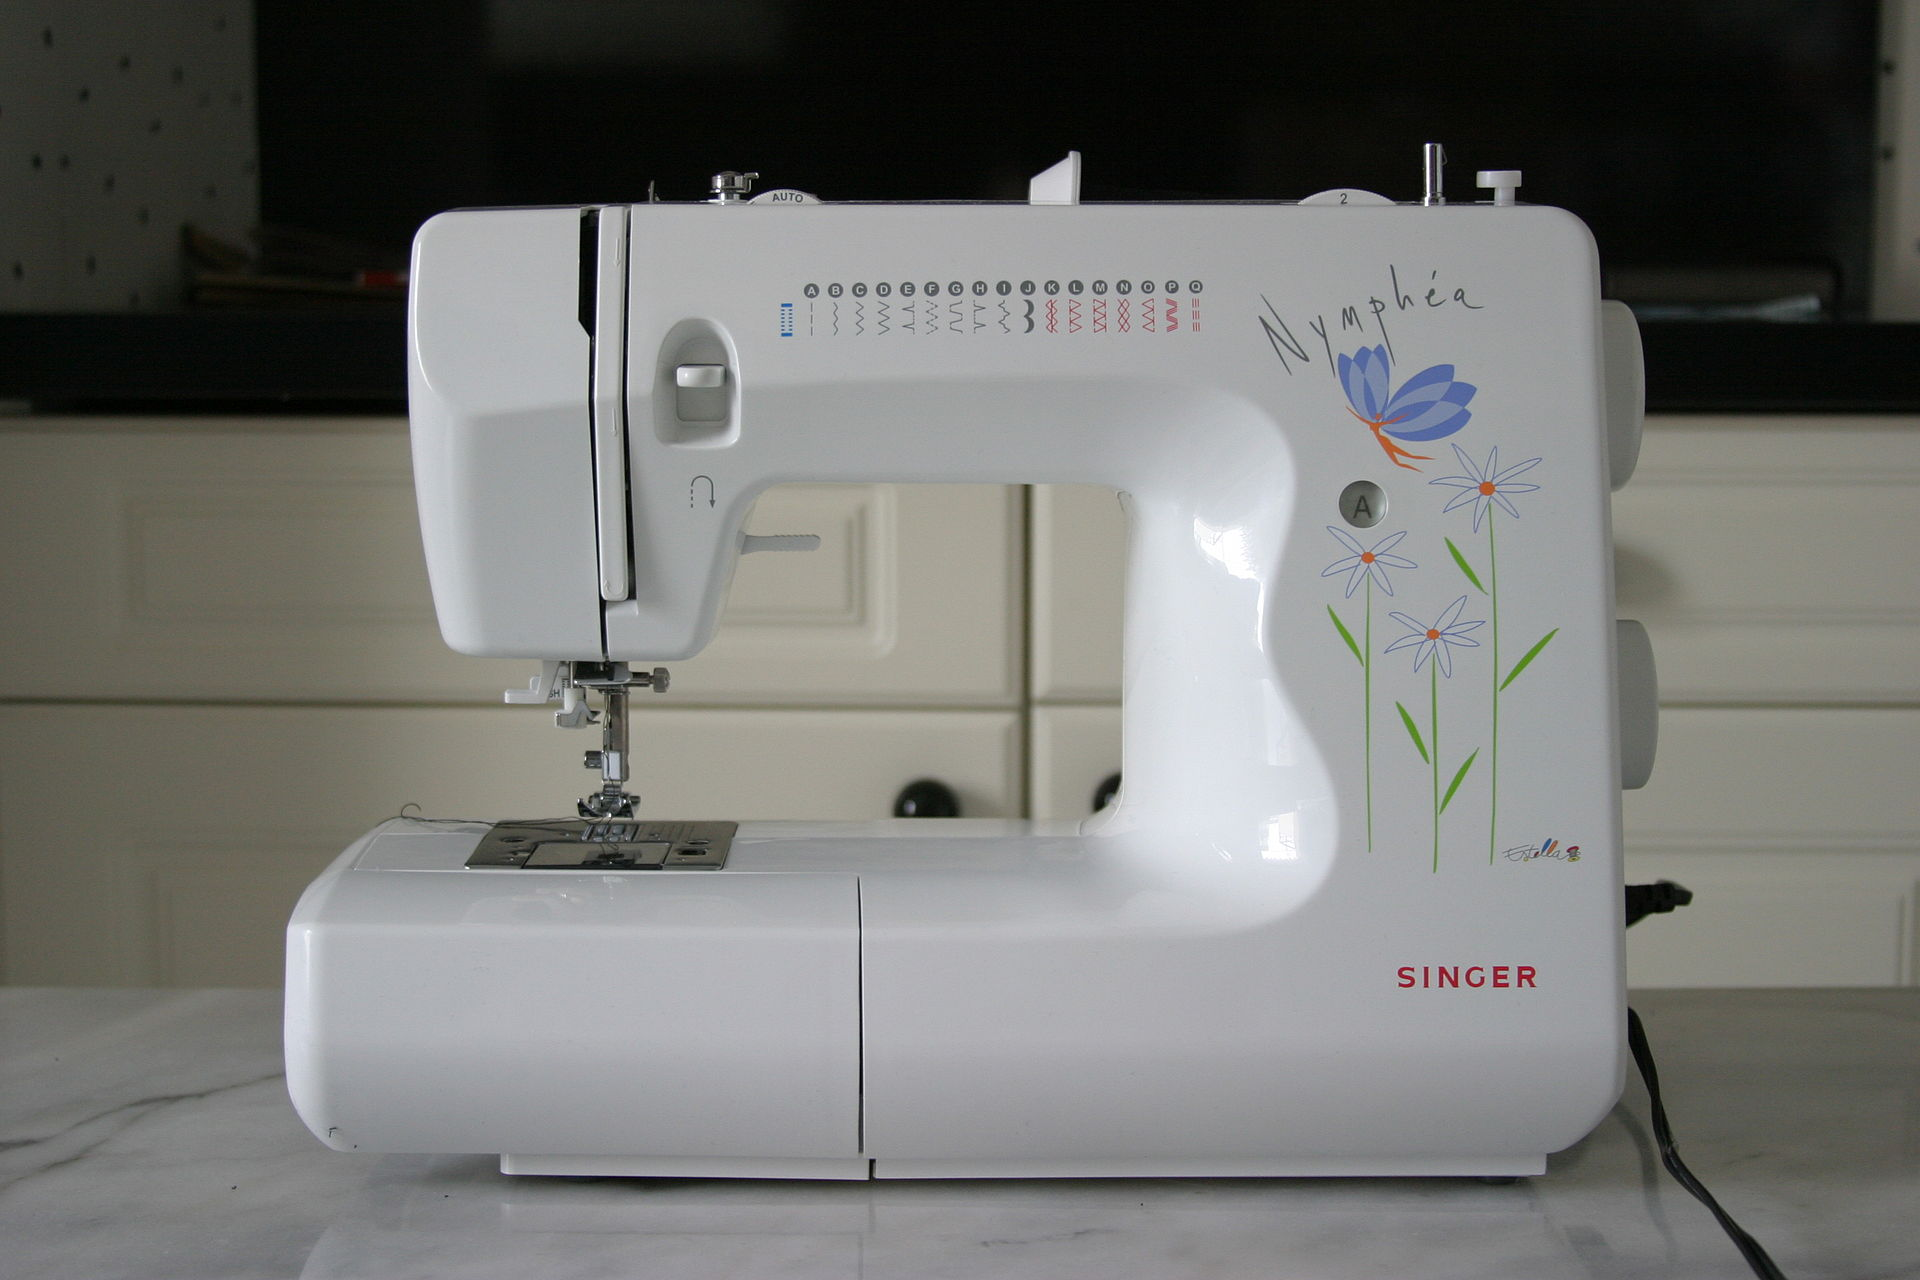 Sewing Simple English Wikipedia The Free Encyclopedia